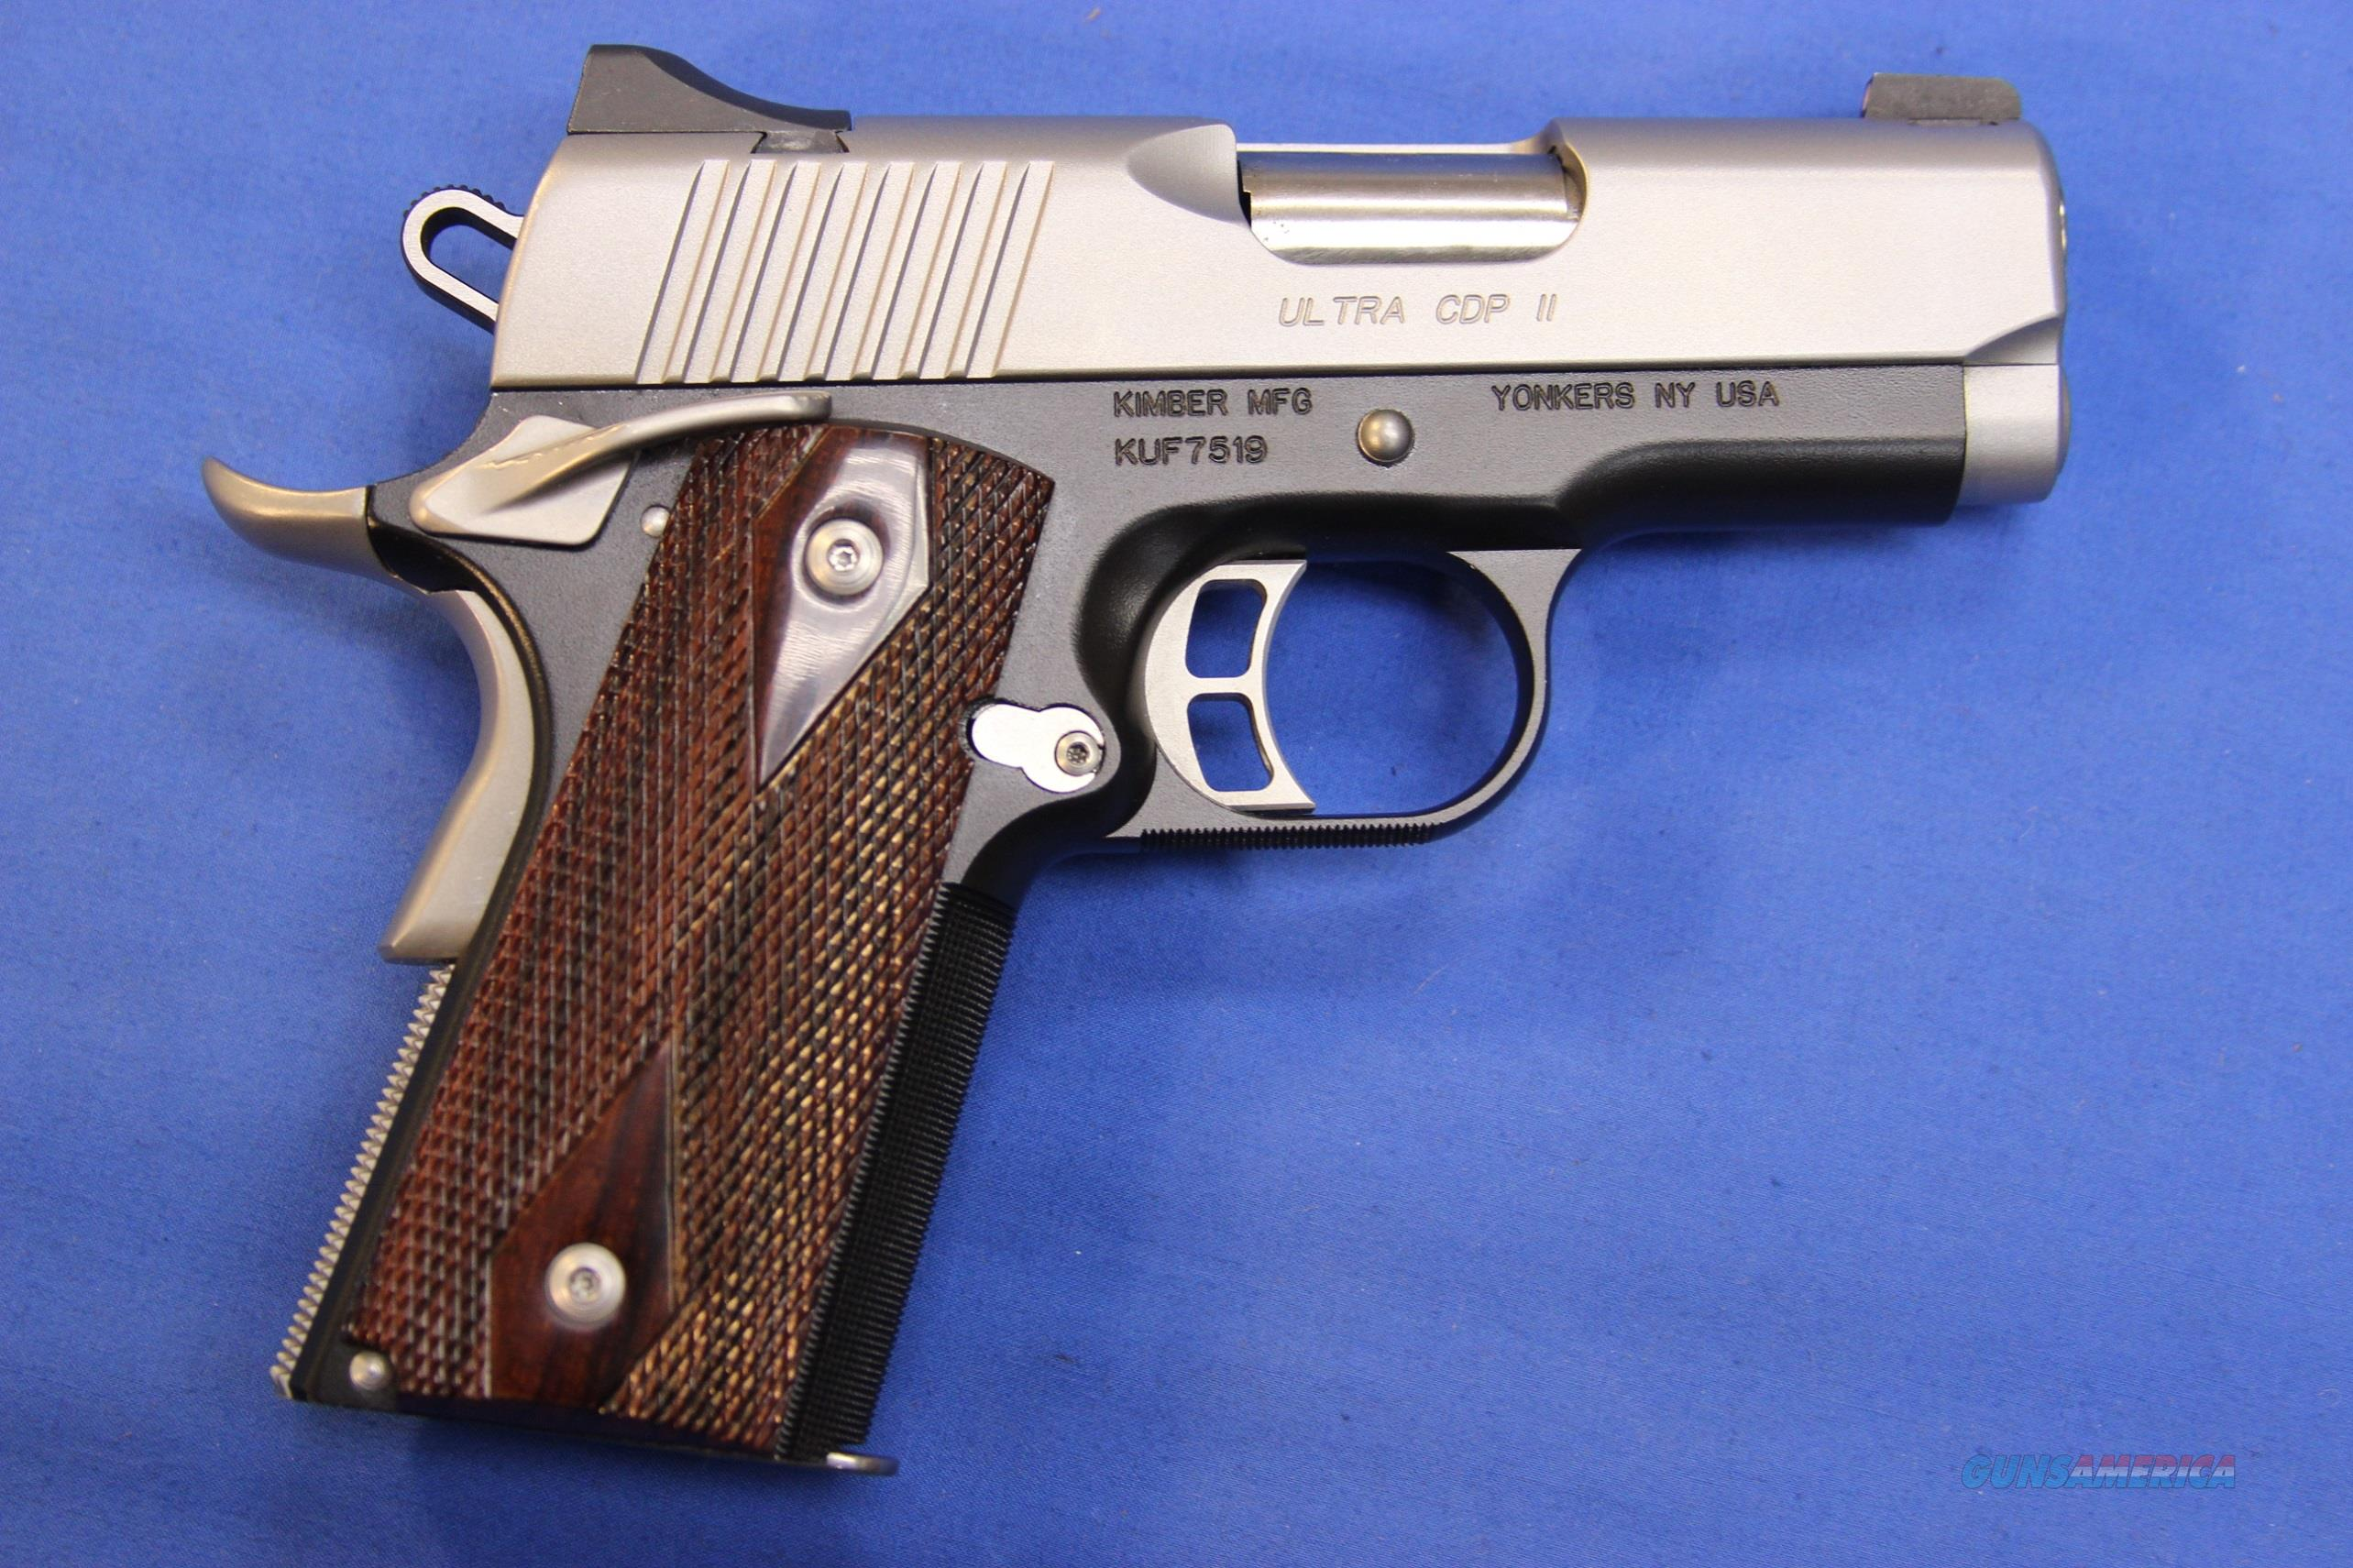 KIMBER ULTRA CDP II 9mm w/ BOX - EXCELLENT CONDITION w/3 MAGS  Guns > Pistols > Kimber of America Pistols